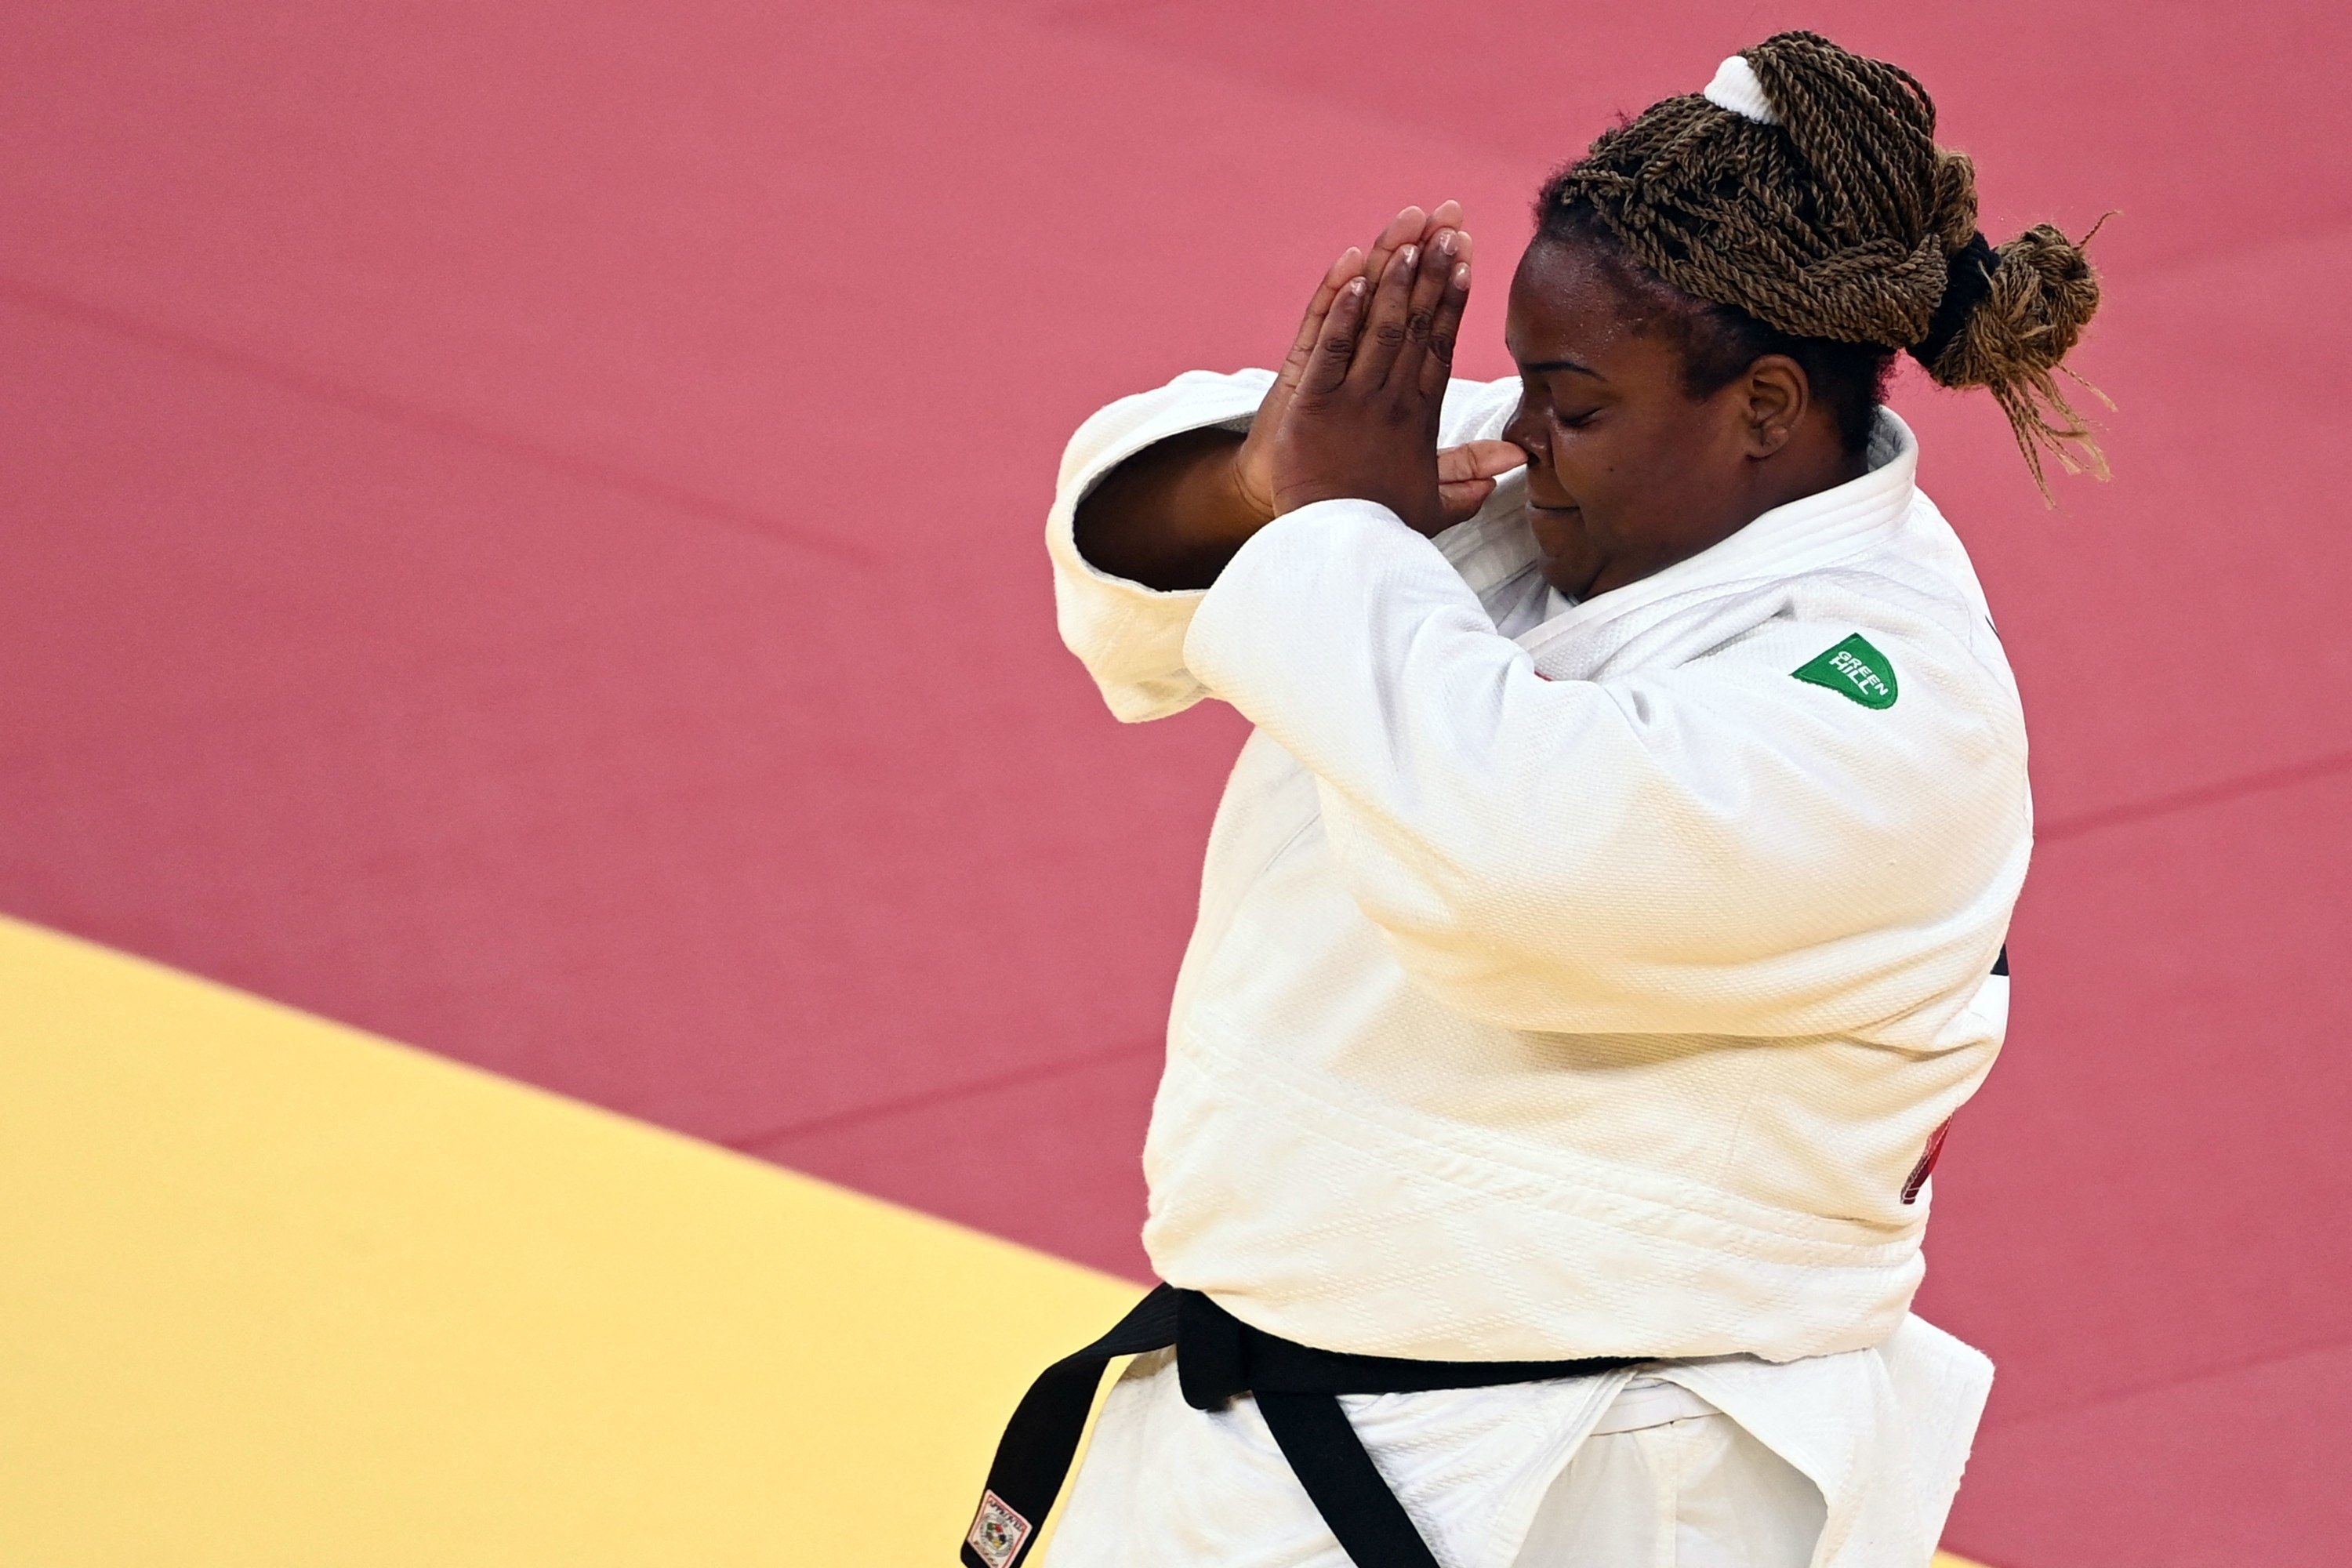 An Olympic medalist raises her hands in prayer after winning a judo competition